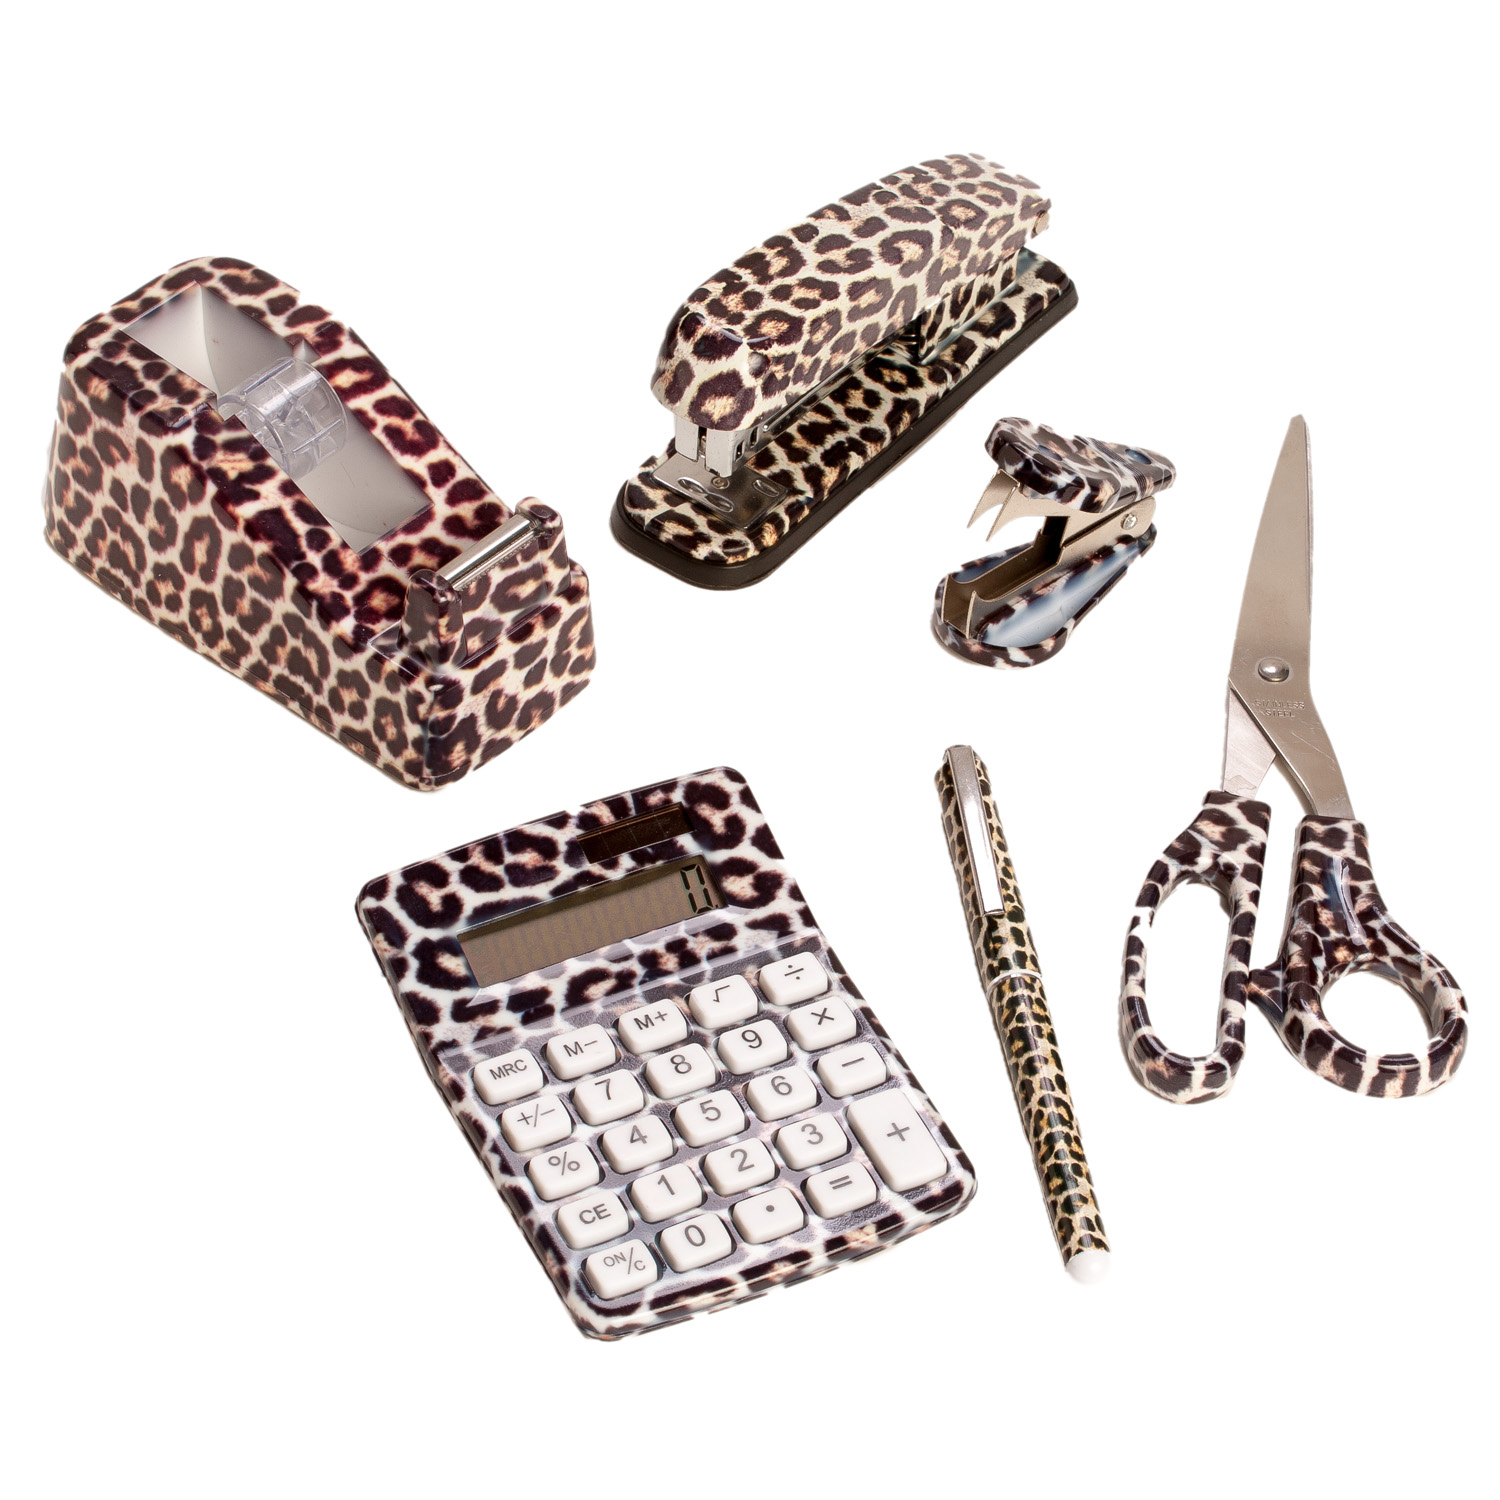 Leopard Print Office Supplies